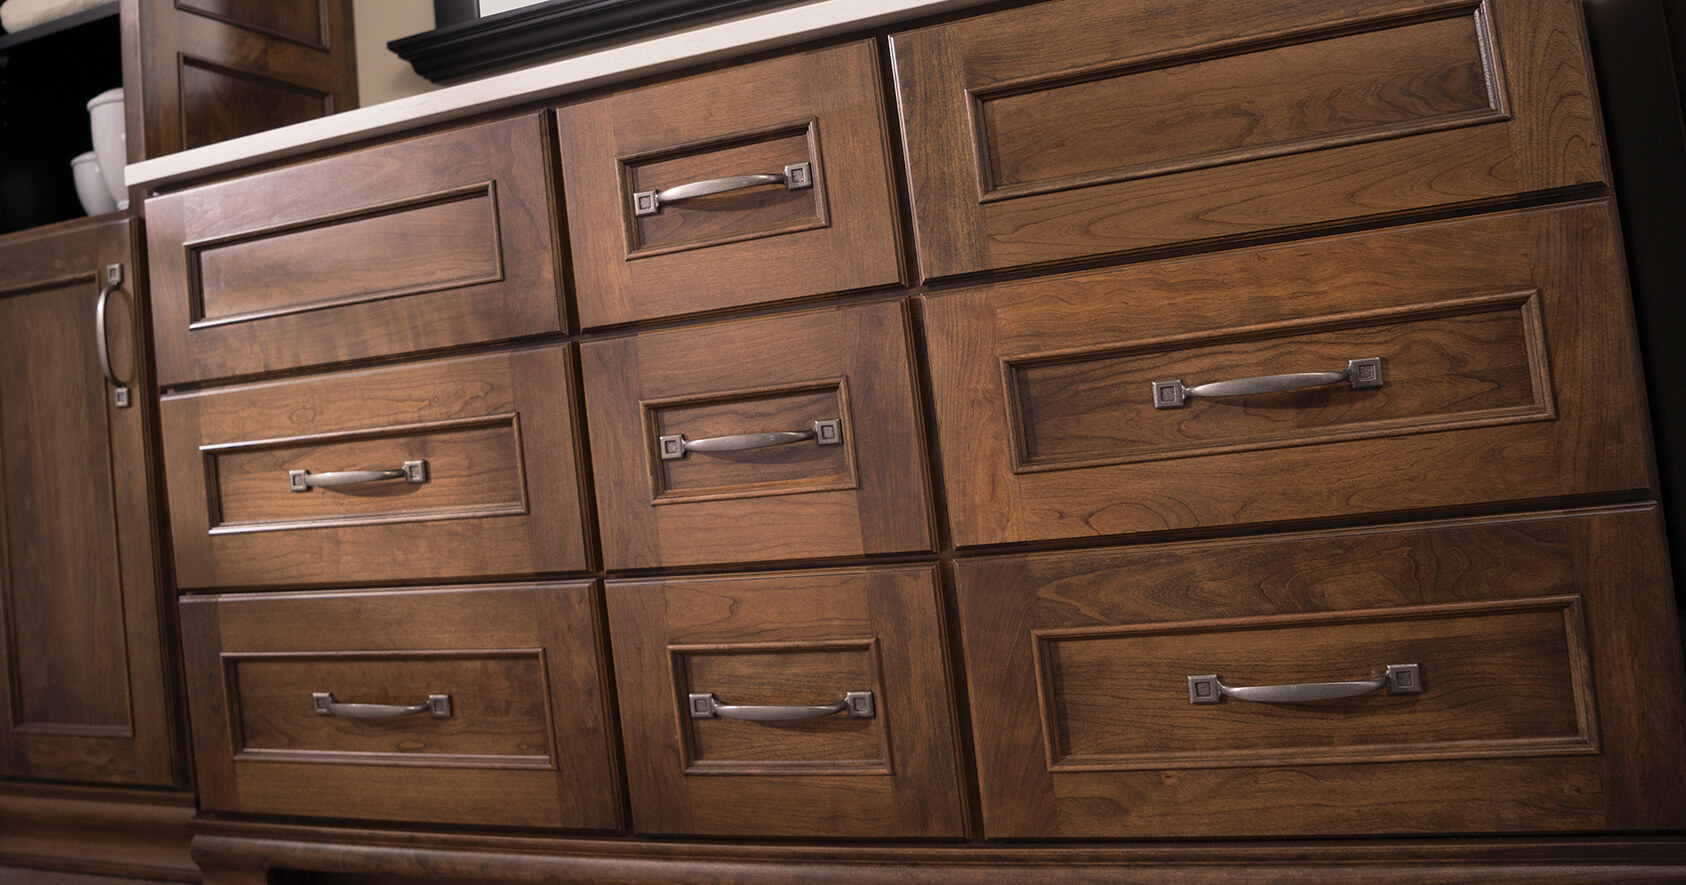 Sustainable hardwood products are used for Dura Supreme Cabinetry Kitchen and Bath Cabinets.